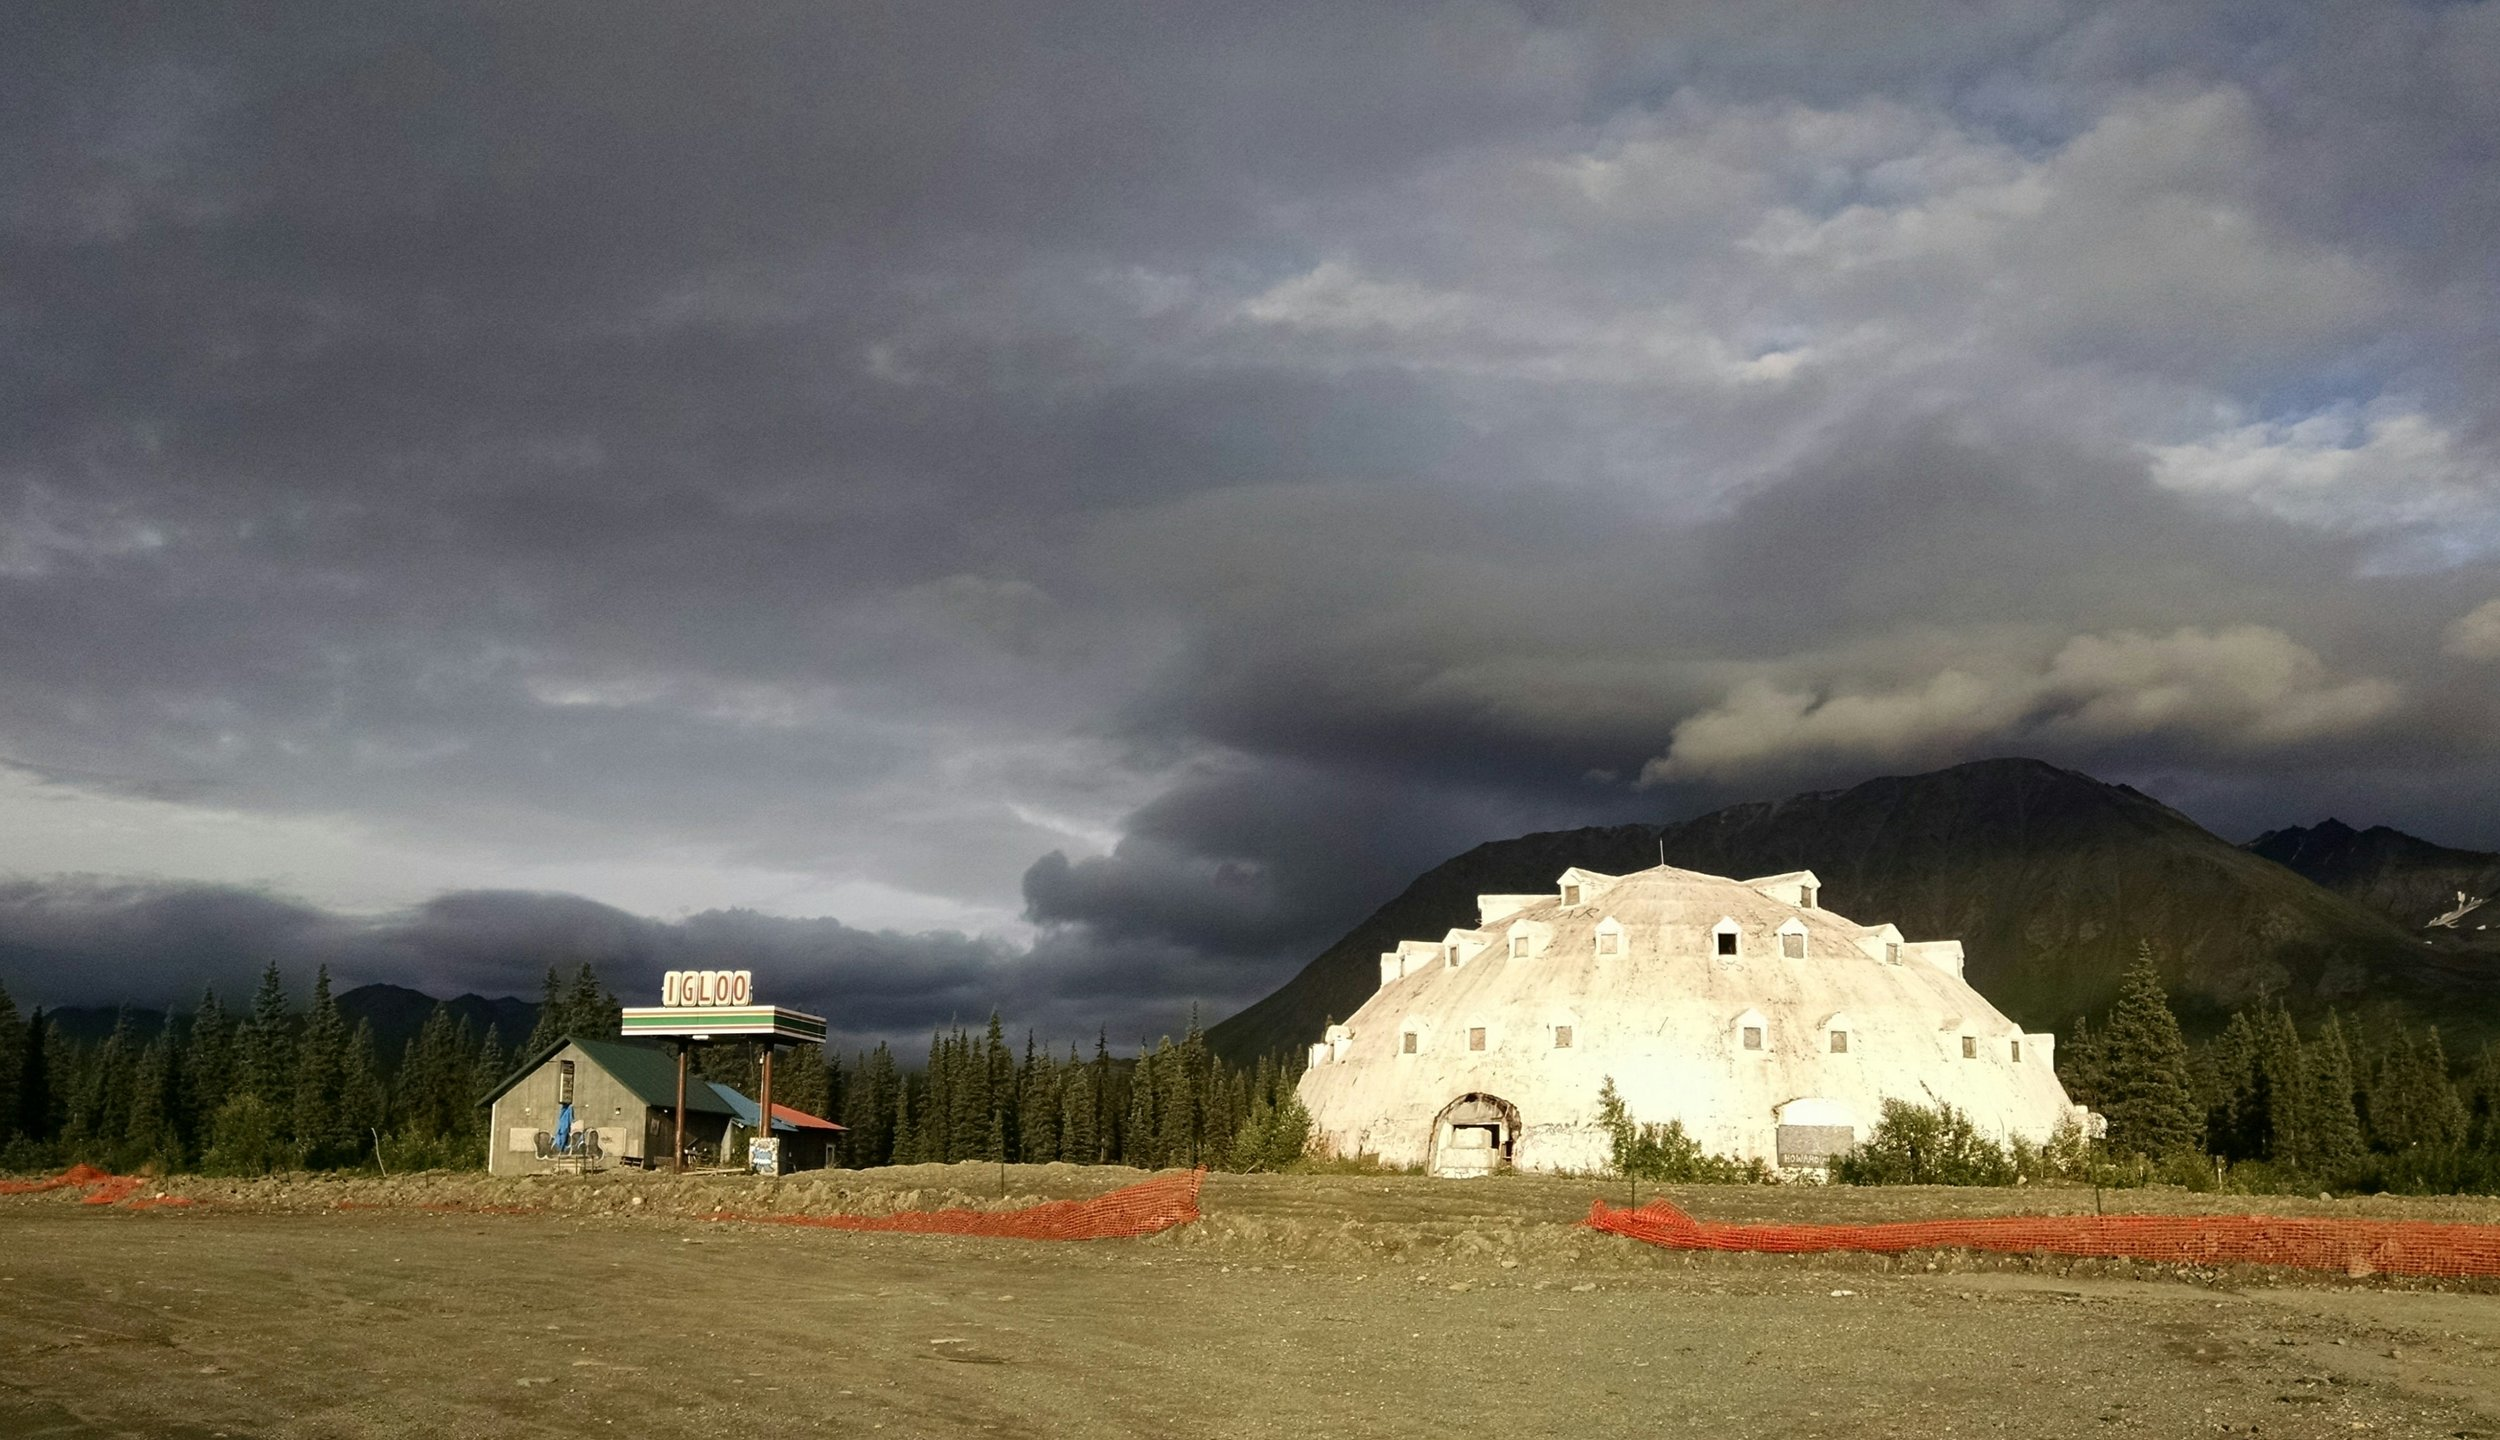 storm over igloo - The Igloo gas station, an iconic dystope in the Alaskan landscape, always a bad idea, none-the-less compelling in all it's glorious absurdity - looks as if it is being prepared for demolition? This is an incredible location for a Light Art installation.